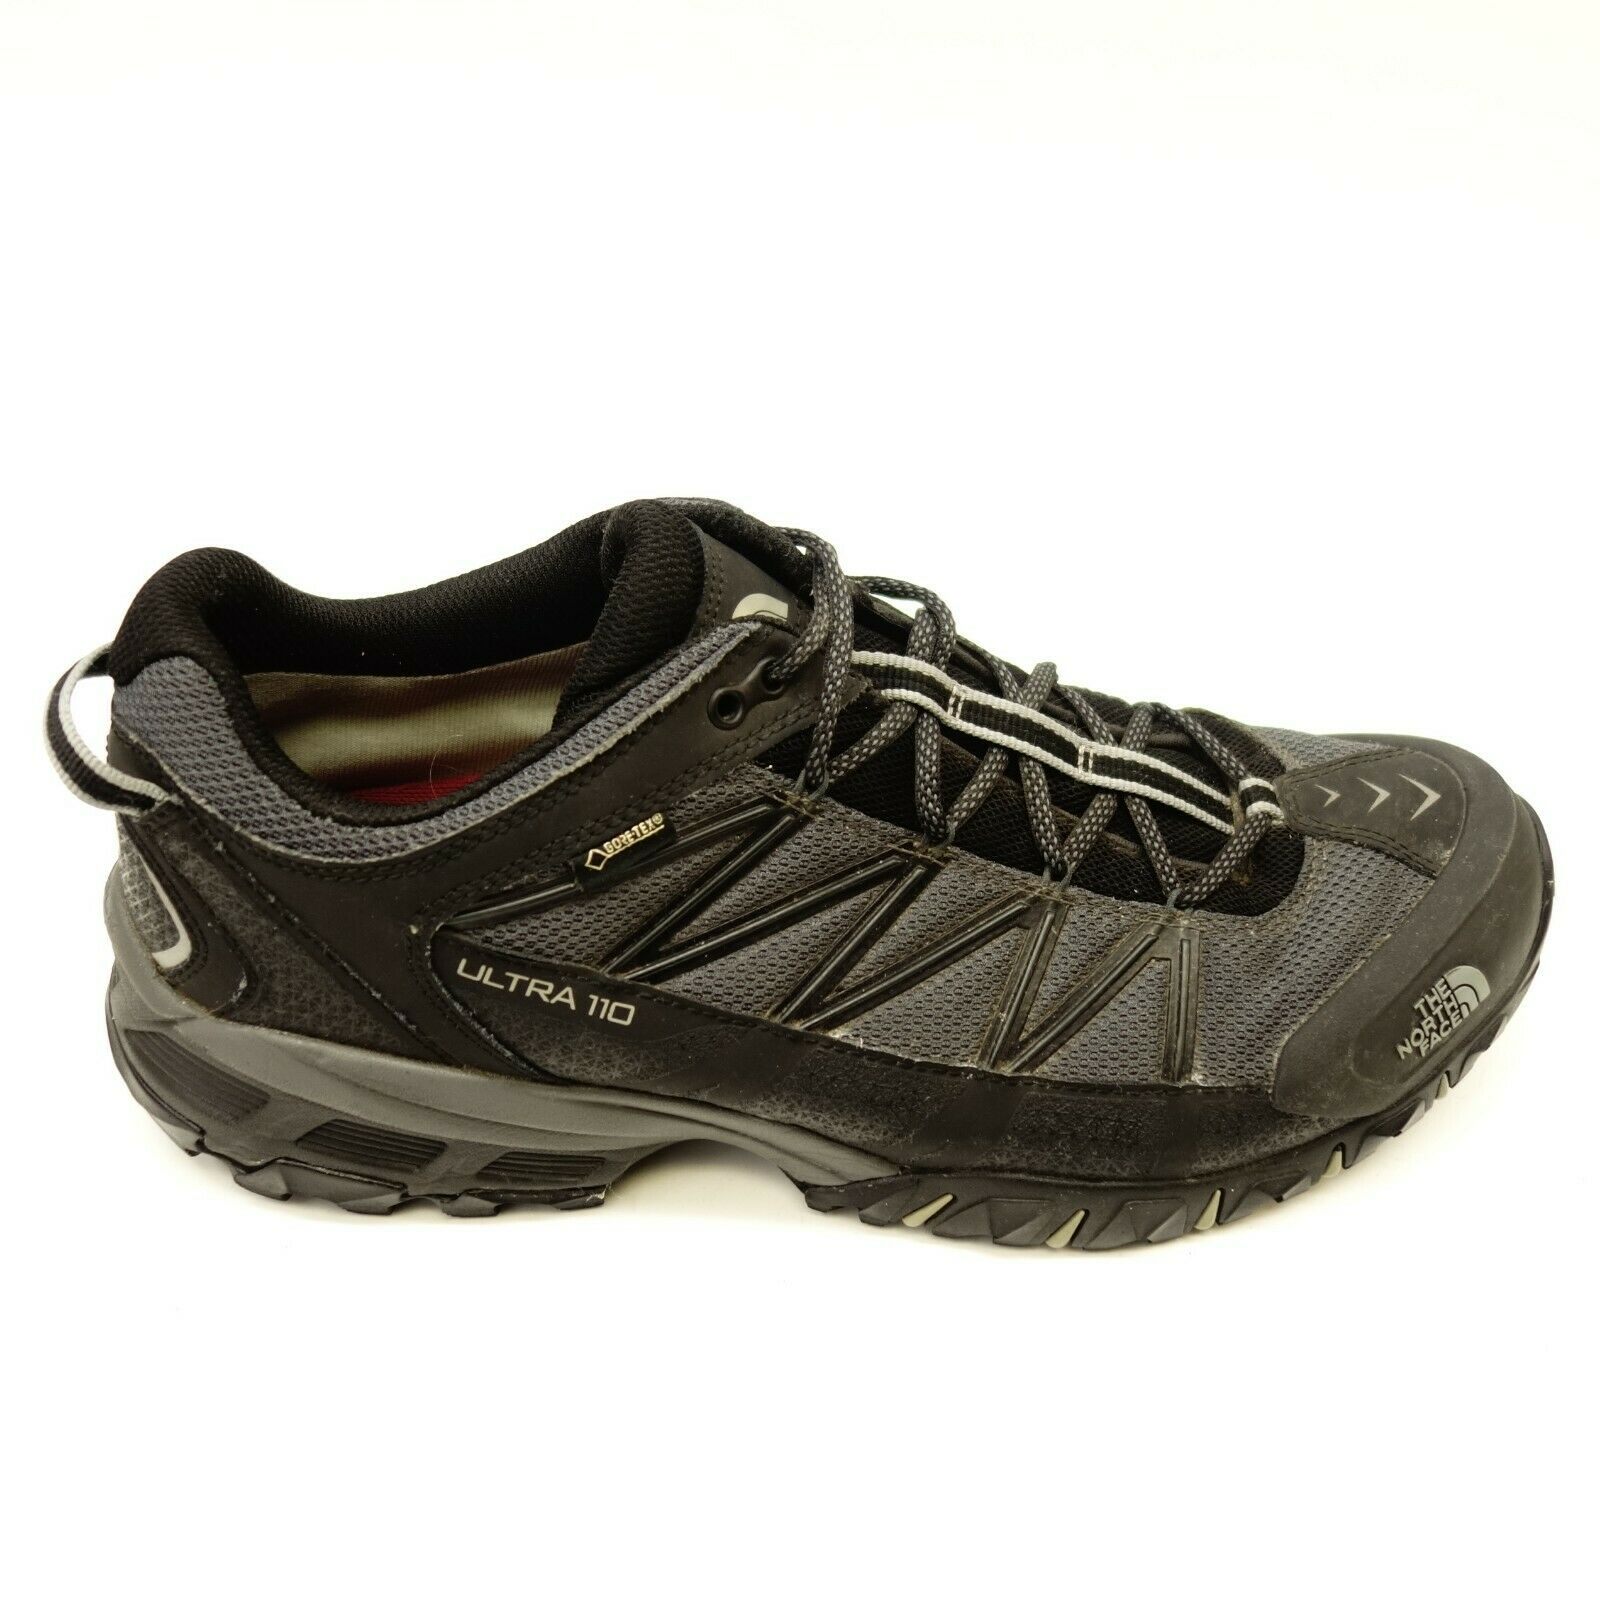 8ad5803c2b North Face Mens Size 11.5 Ultra 110 GTX Blk Athletic Support Trail Hiking  shoes